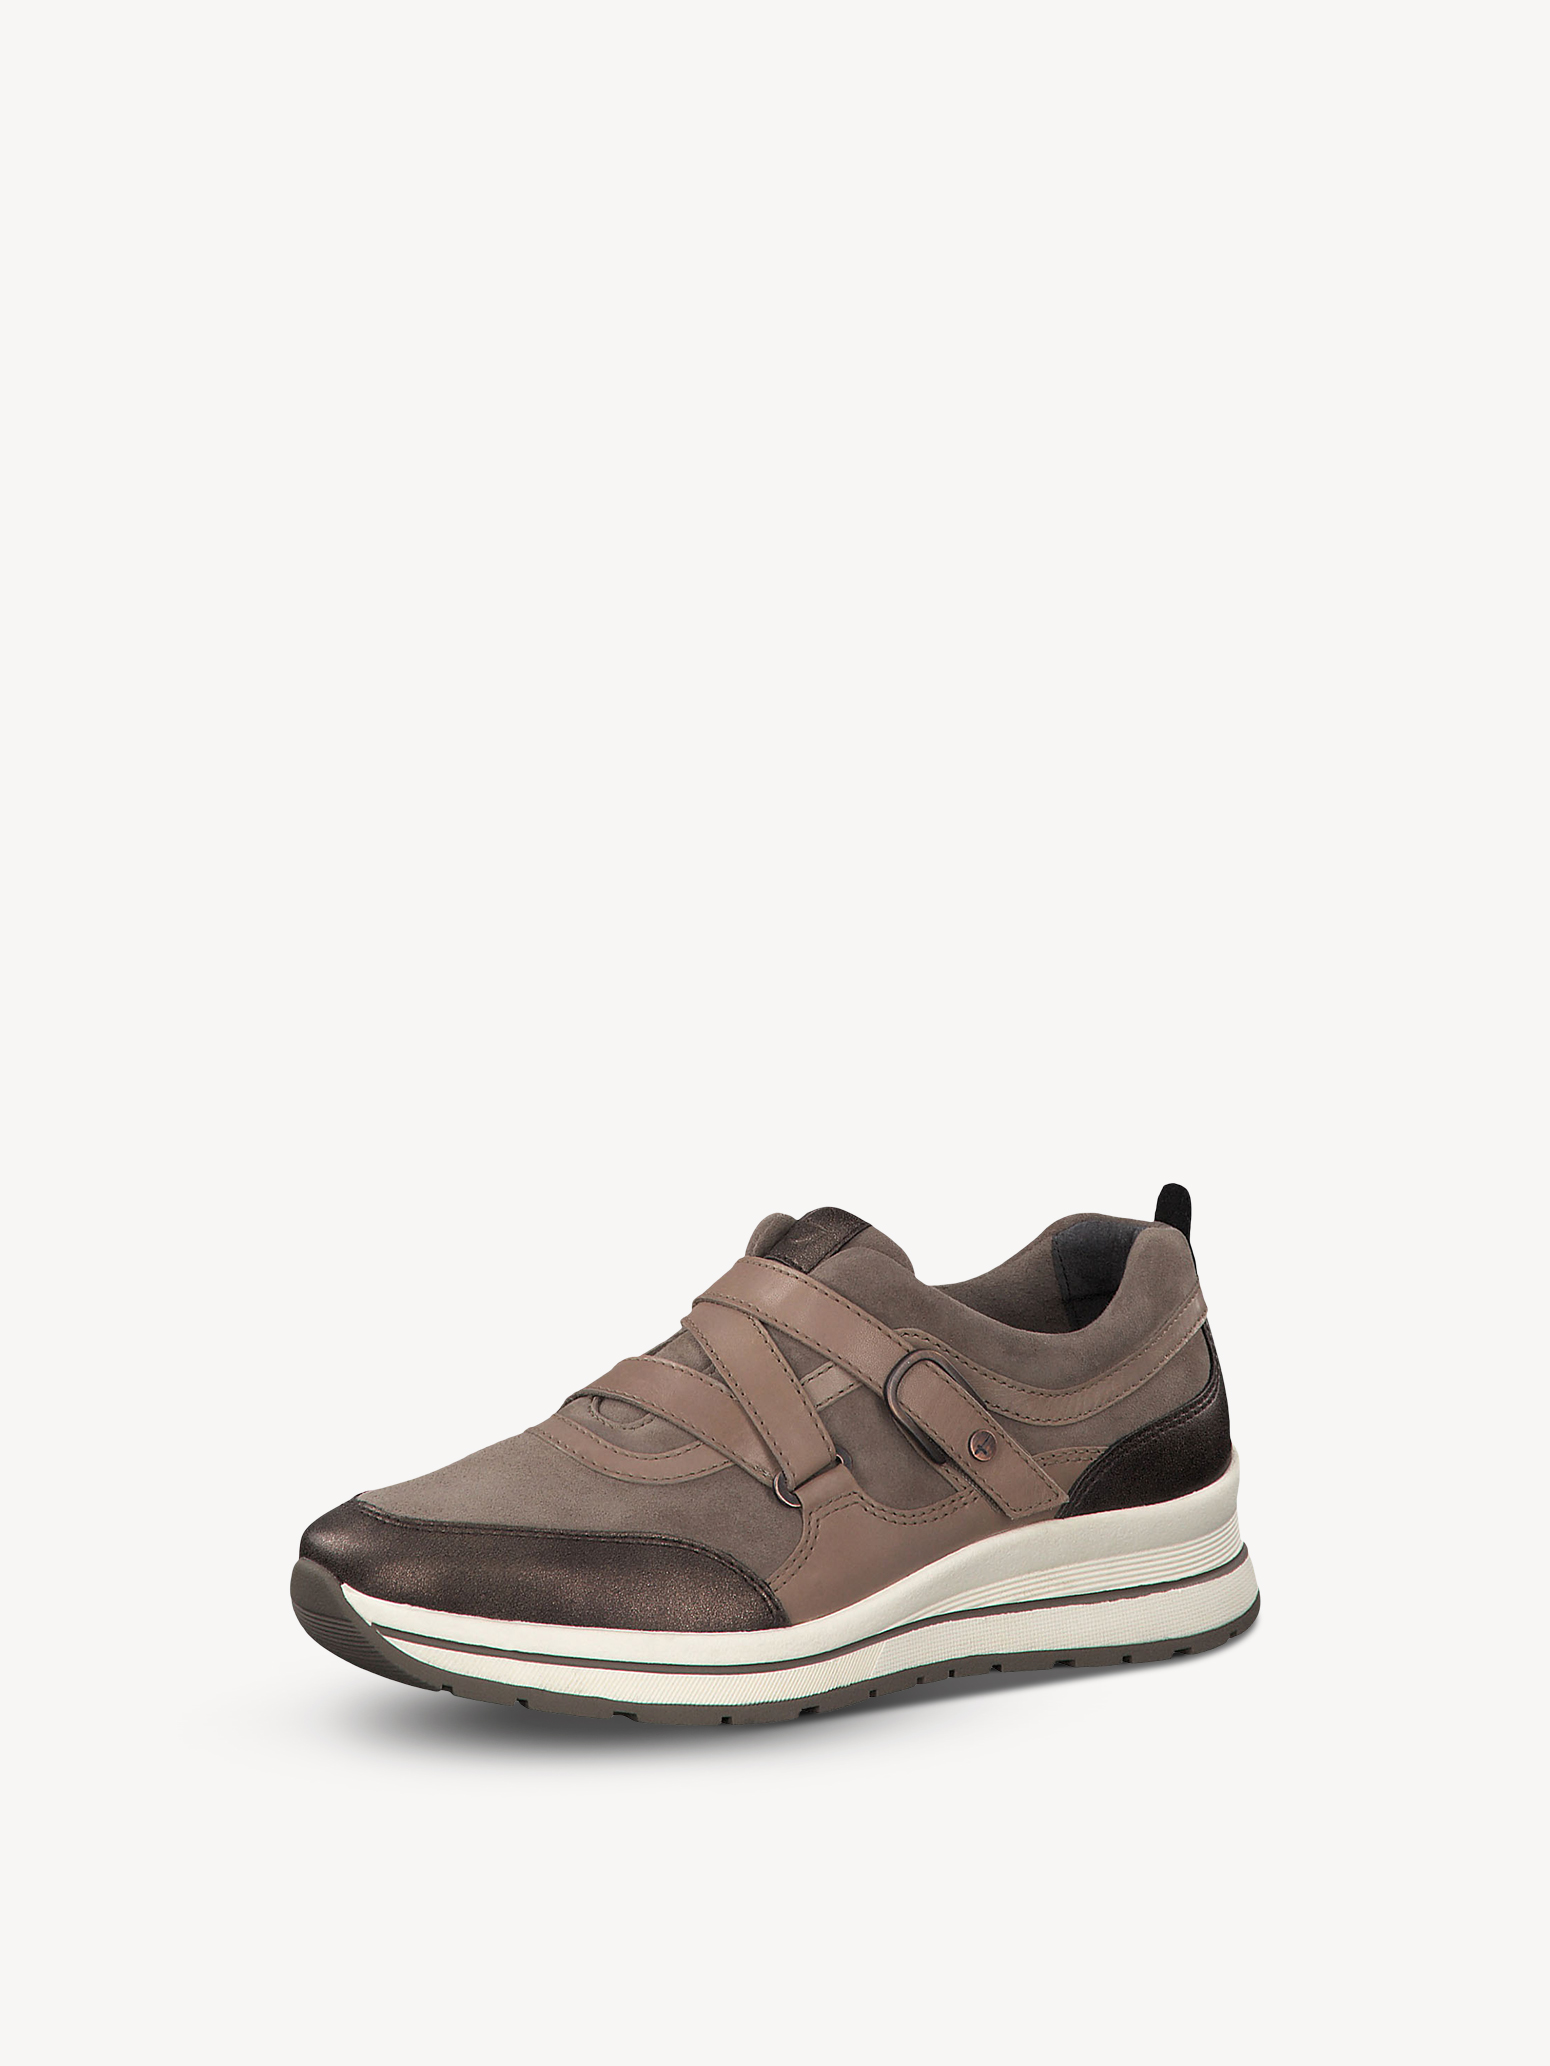 Leather Sneaker - brown, TAUPE COMB, hi-res